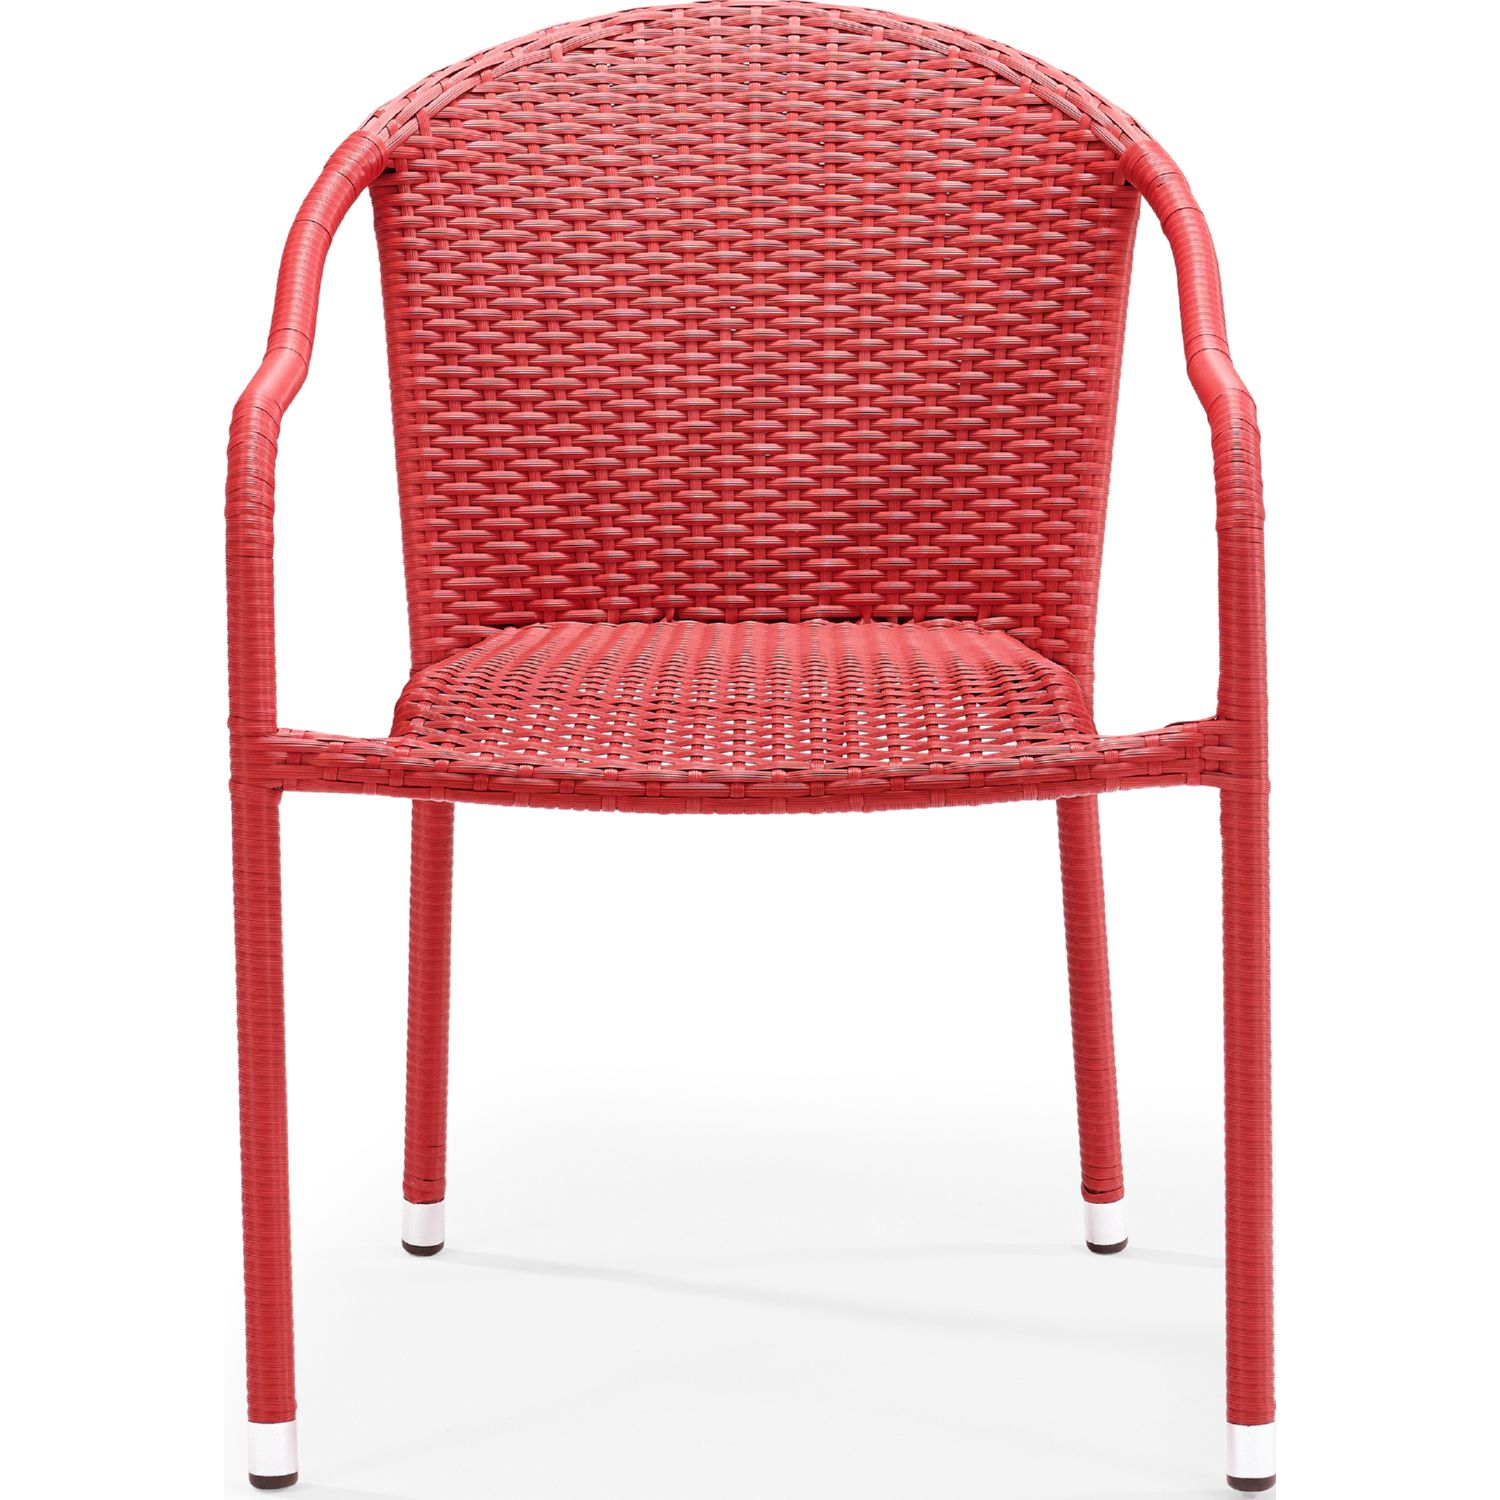 Miraculous Palm Harbor Outdoor Wicker Stackable Dining Arm Chairs In Red Set Of 4 By Crosley Creativecarmelina Interior Chair Design Creativecarmelinacom